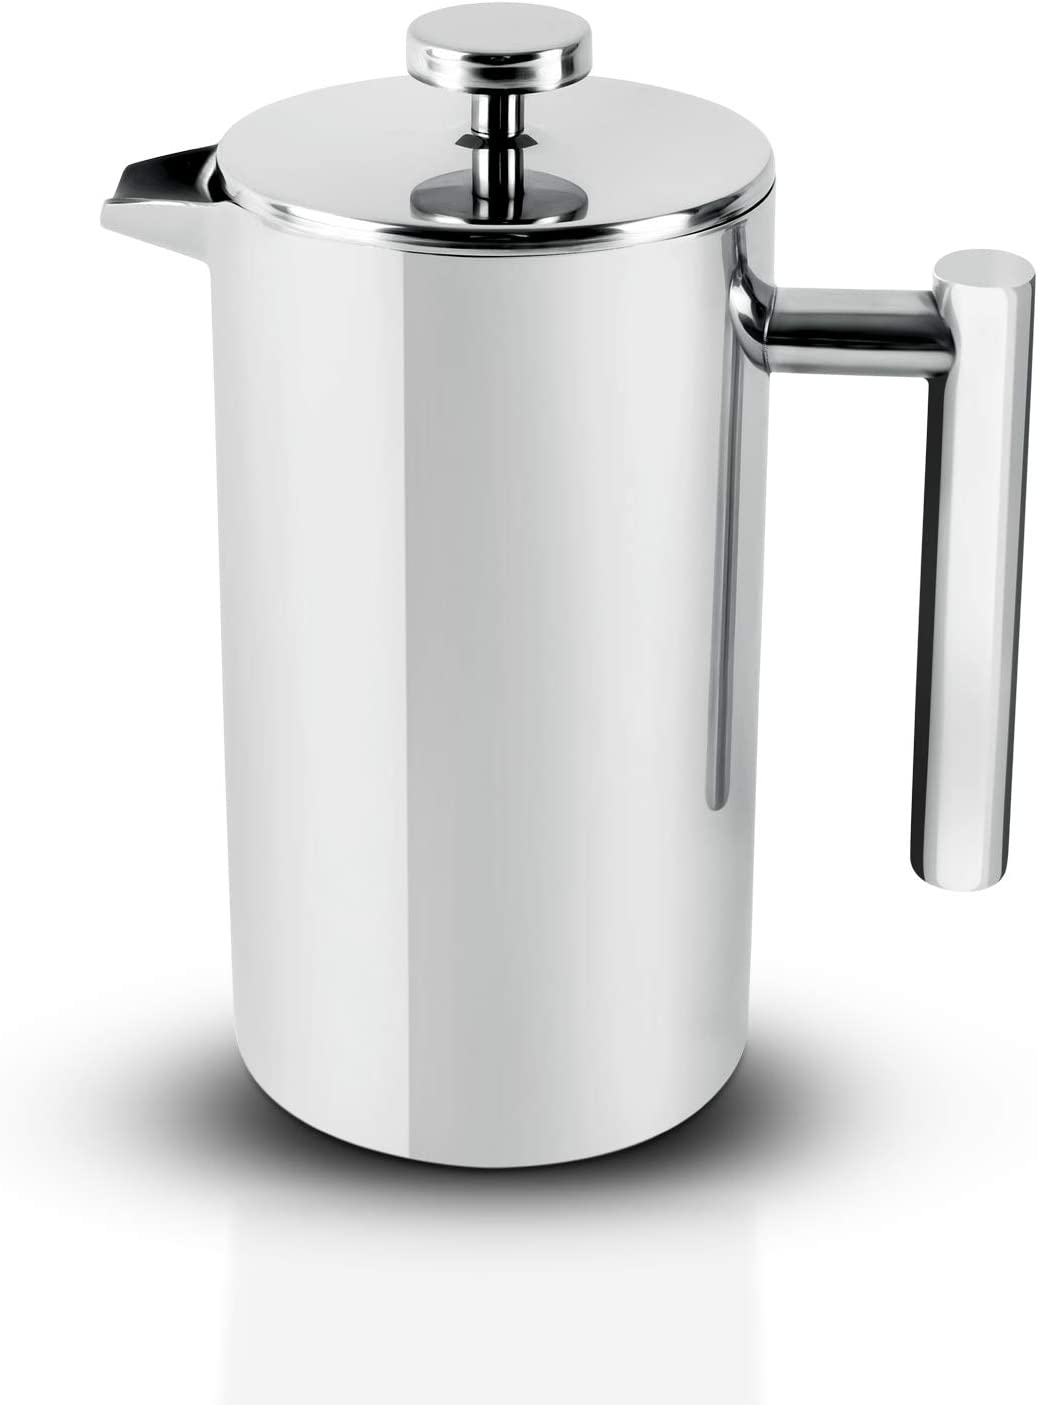 Royalford Mail order cheap Cafetiere Max 74% OFF Stainless Steel Press Coffee Portable French